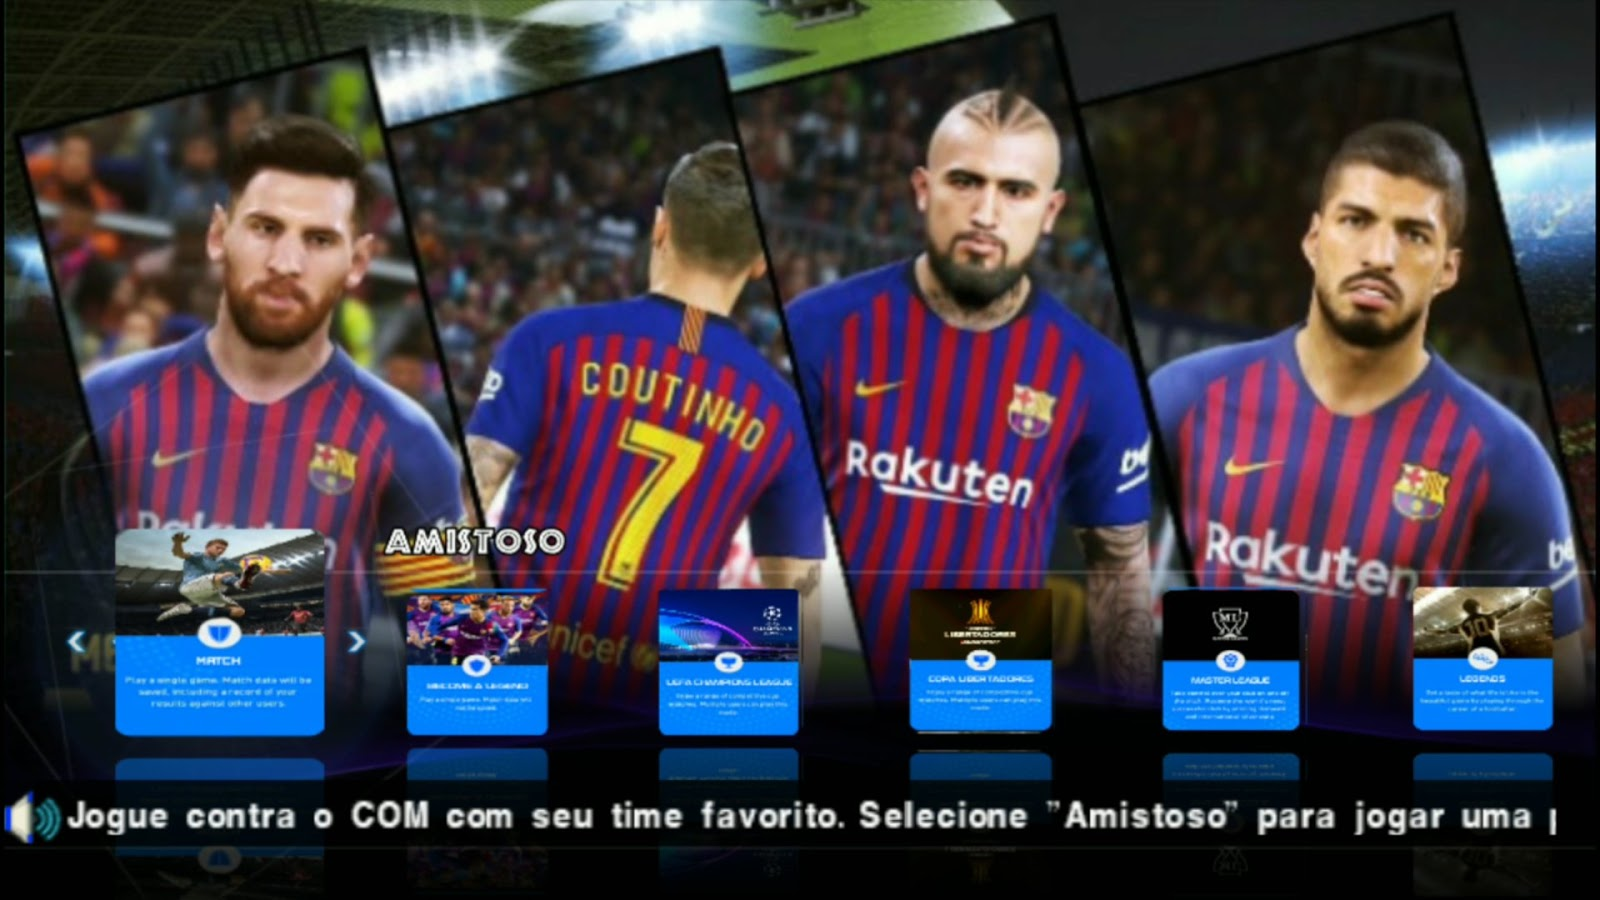 DOWNLOAD PES 2019 PSP NEW SD & TEXTURES SUPER HD BEST GRAPHICS